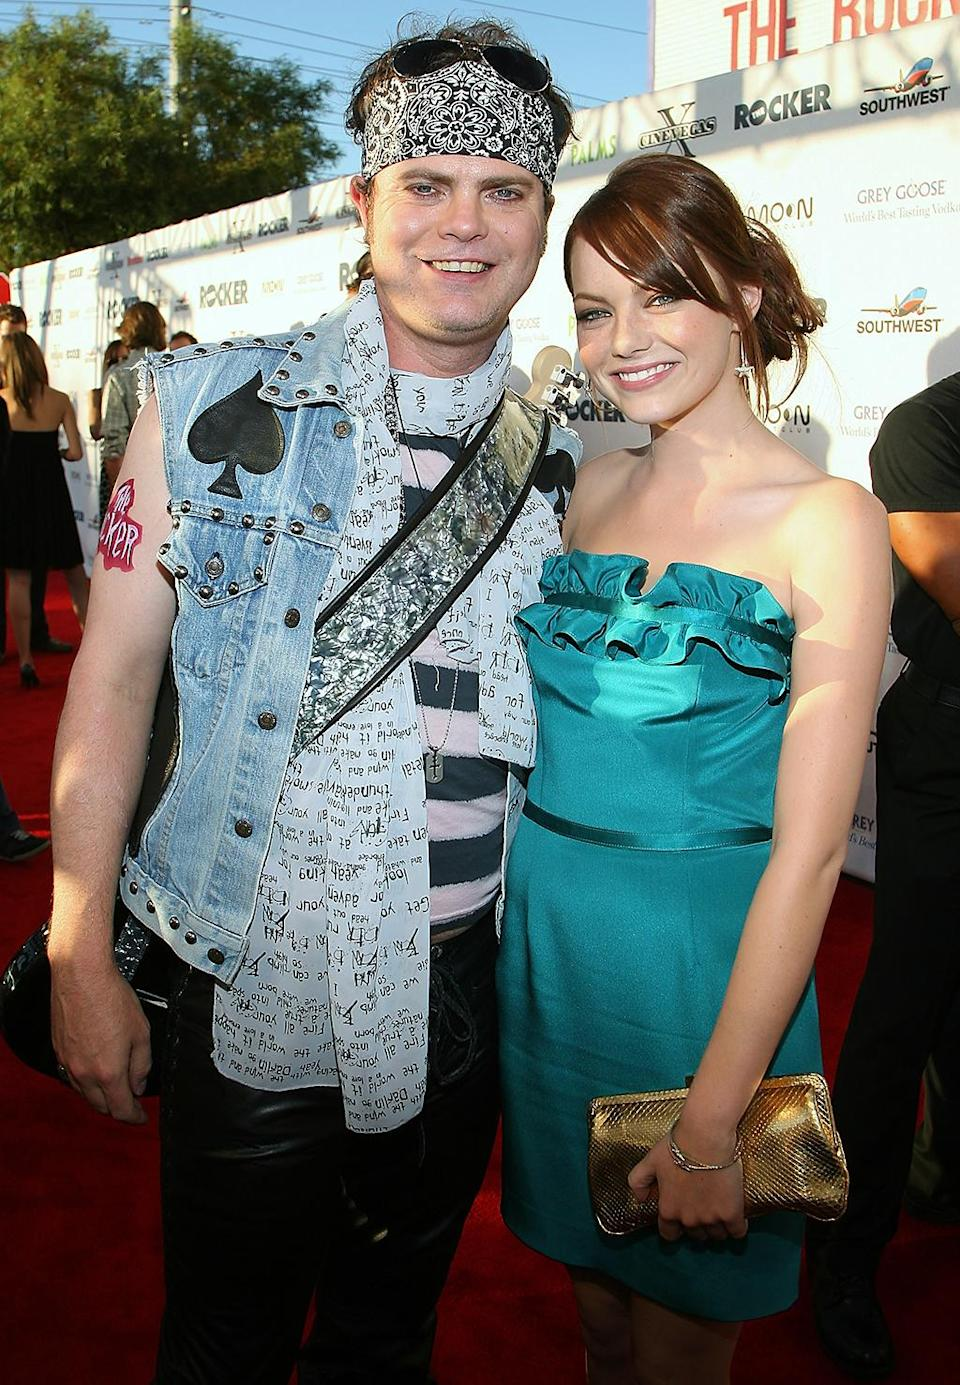 <p>Stone poses with co-star Rainn Wilson at the premiere of their comedy <em>The Rocker</em> on June 12, 2008, in Las Vegas. (Photo: Ethan Miller/Getty Images) </p>